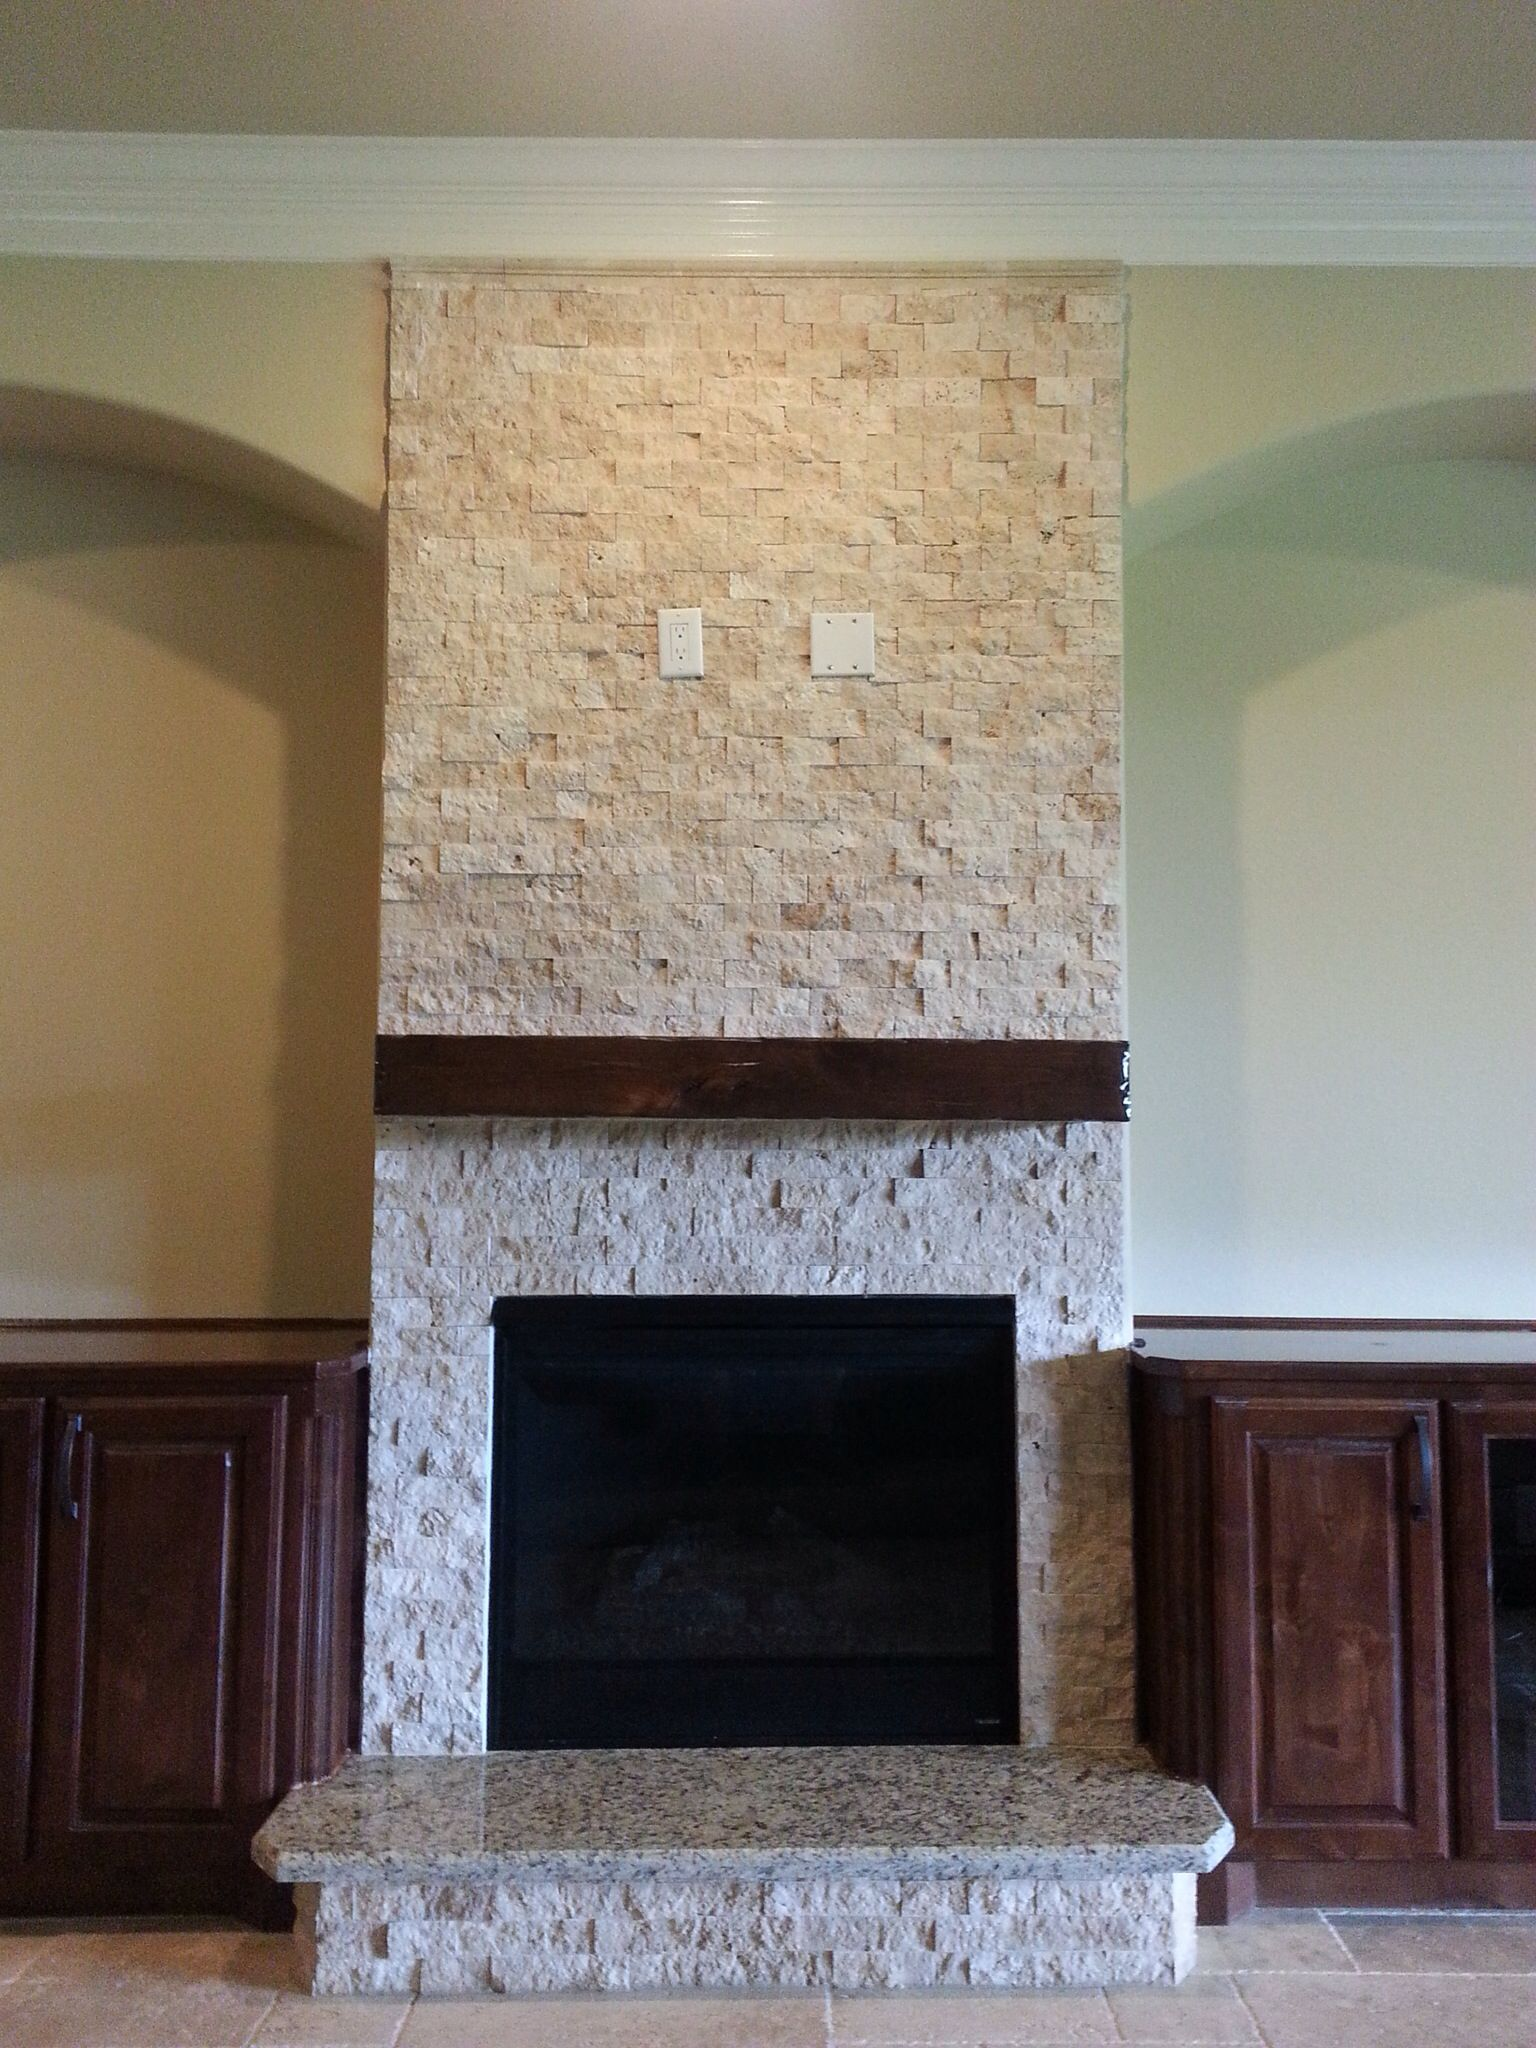 Knotty alder and Mantels